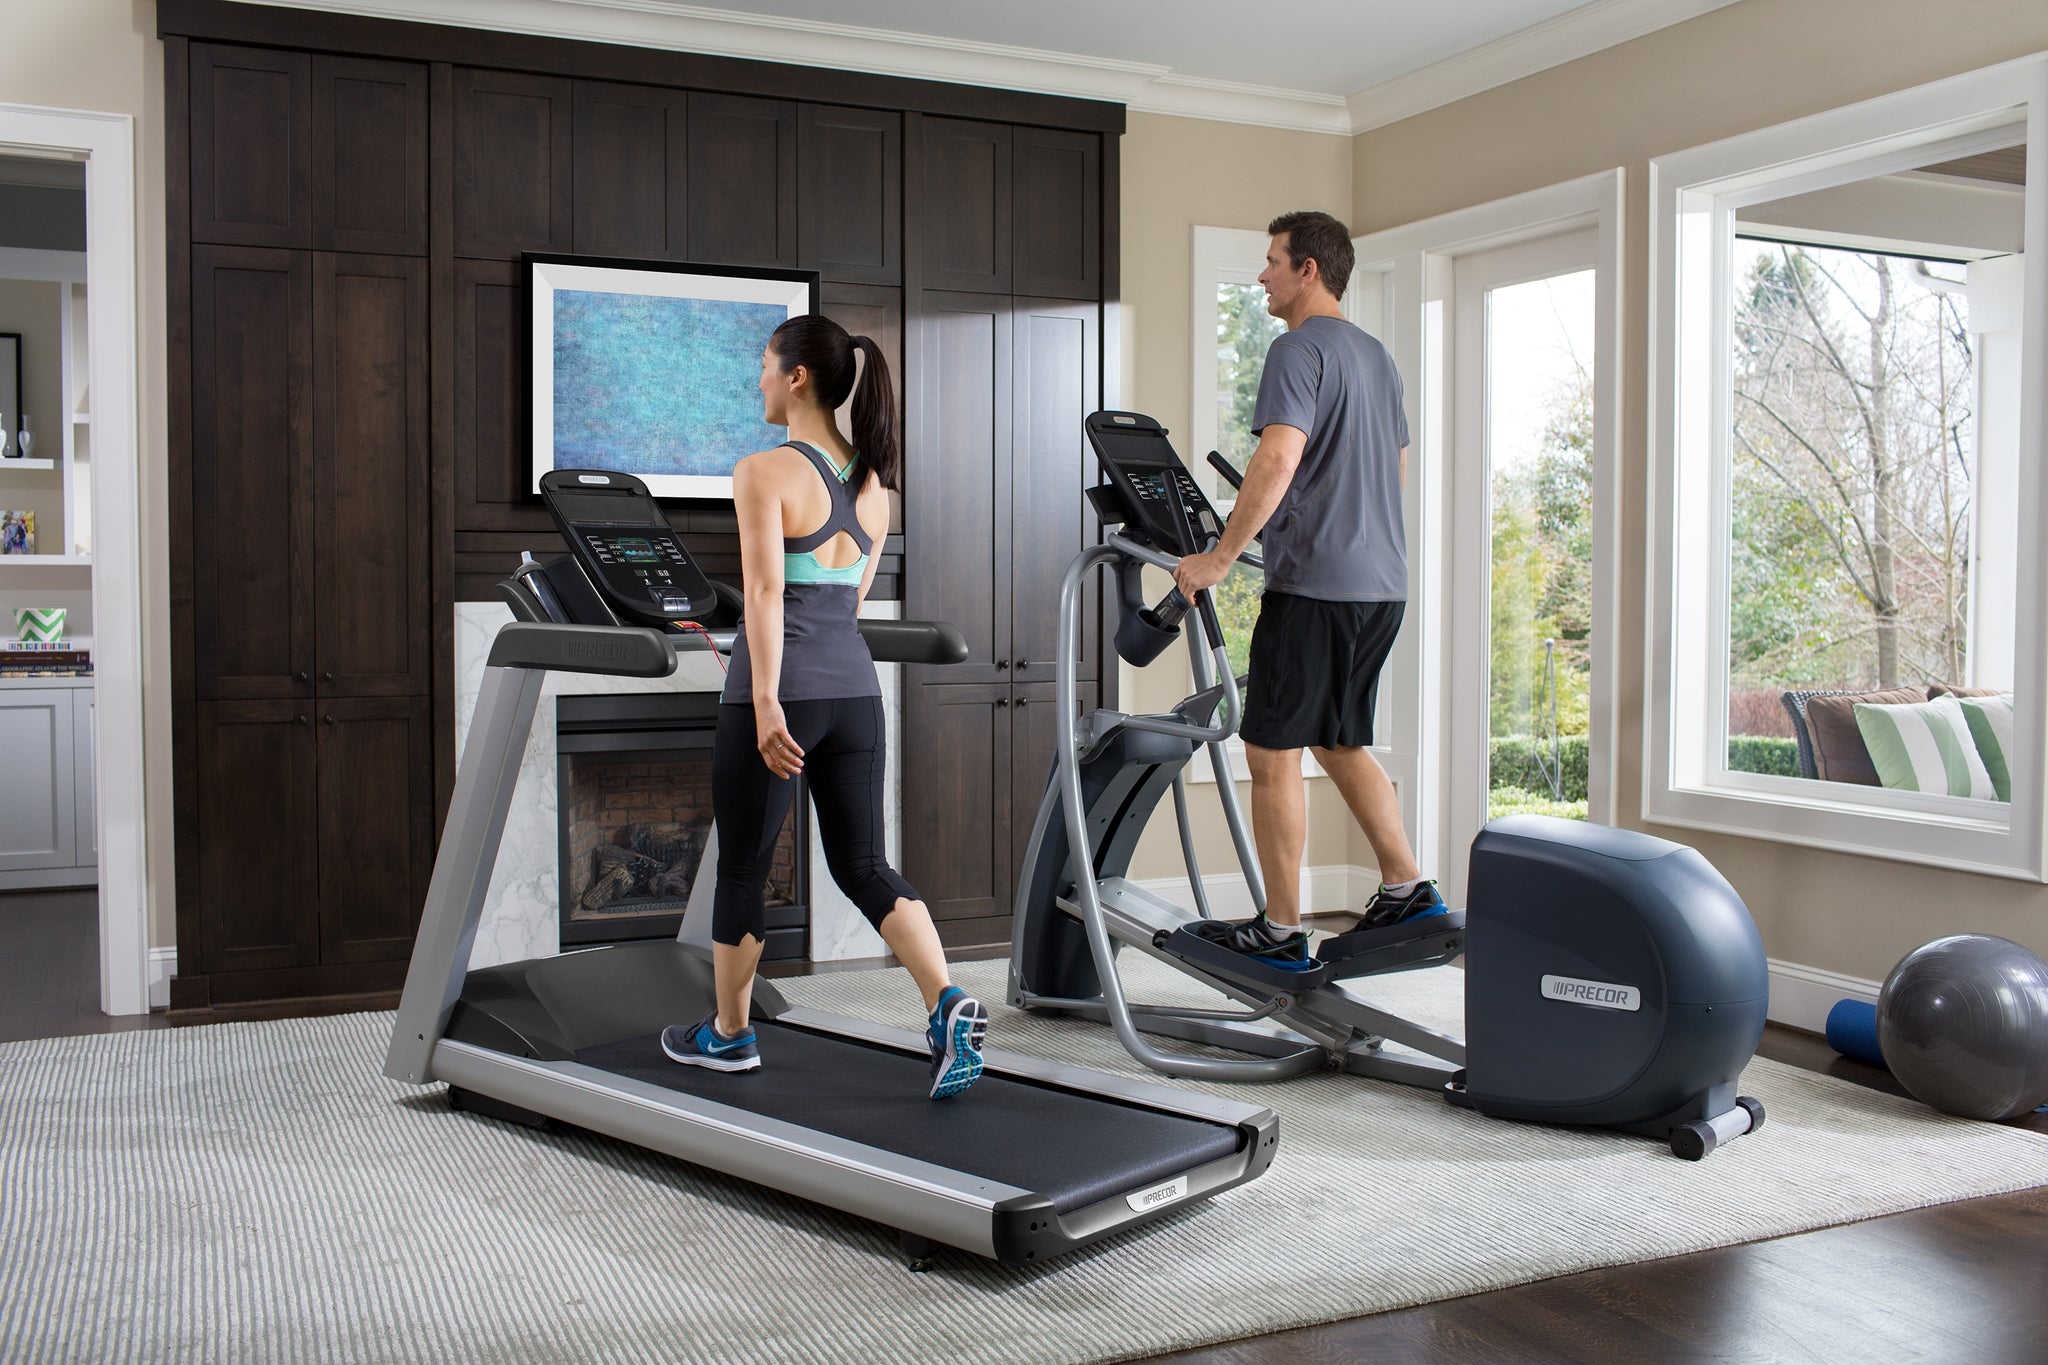 Woman walks on a treadmill, TRM 445, and man is on an elliptical, EFX 447, in their living room